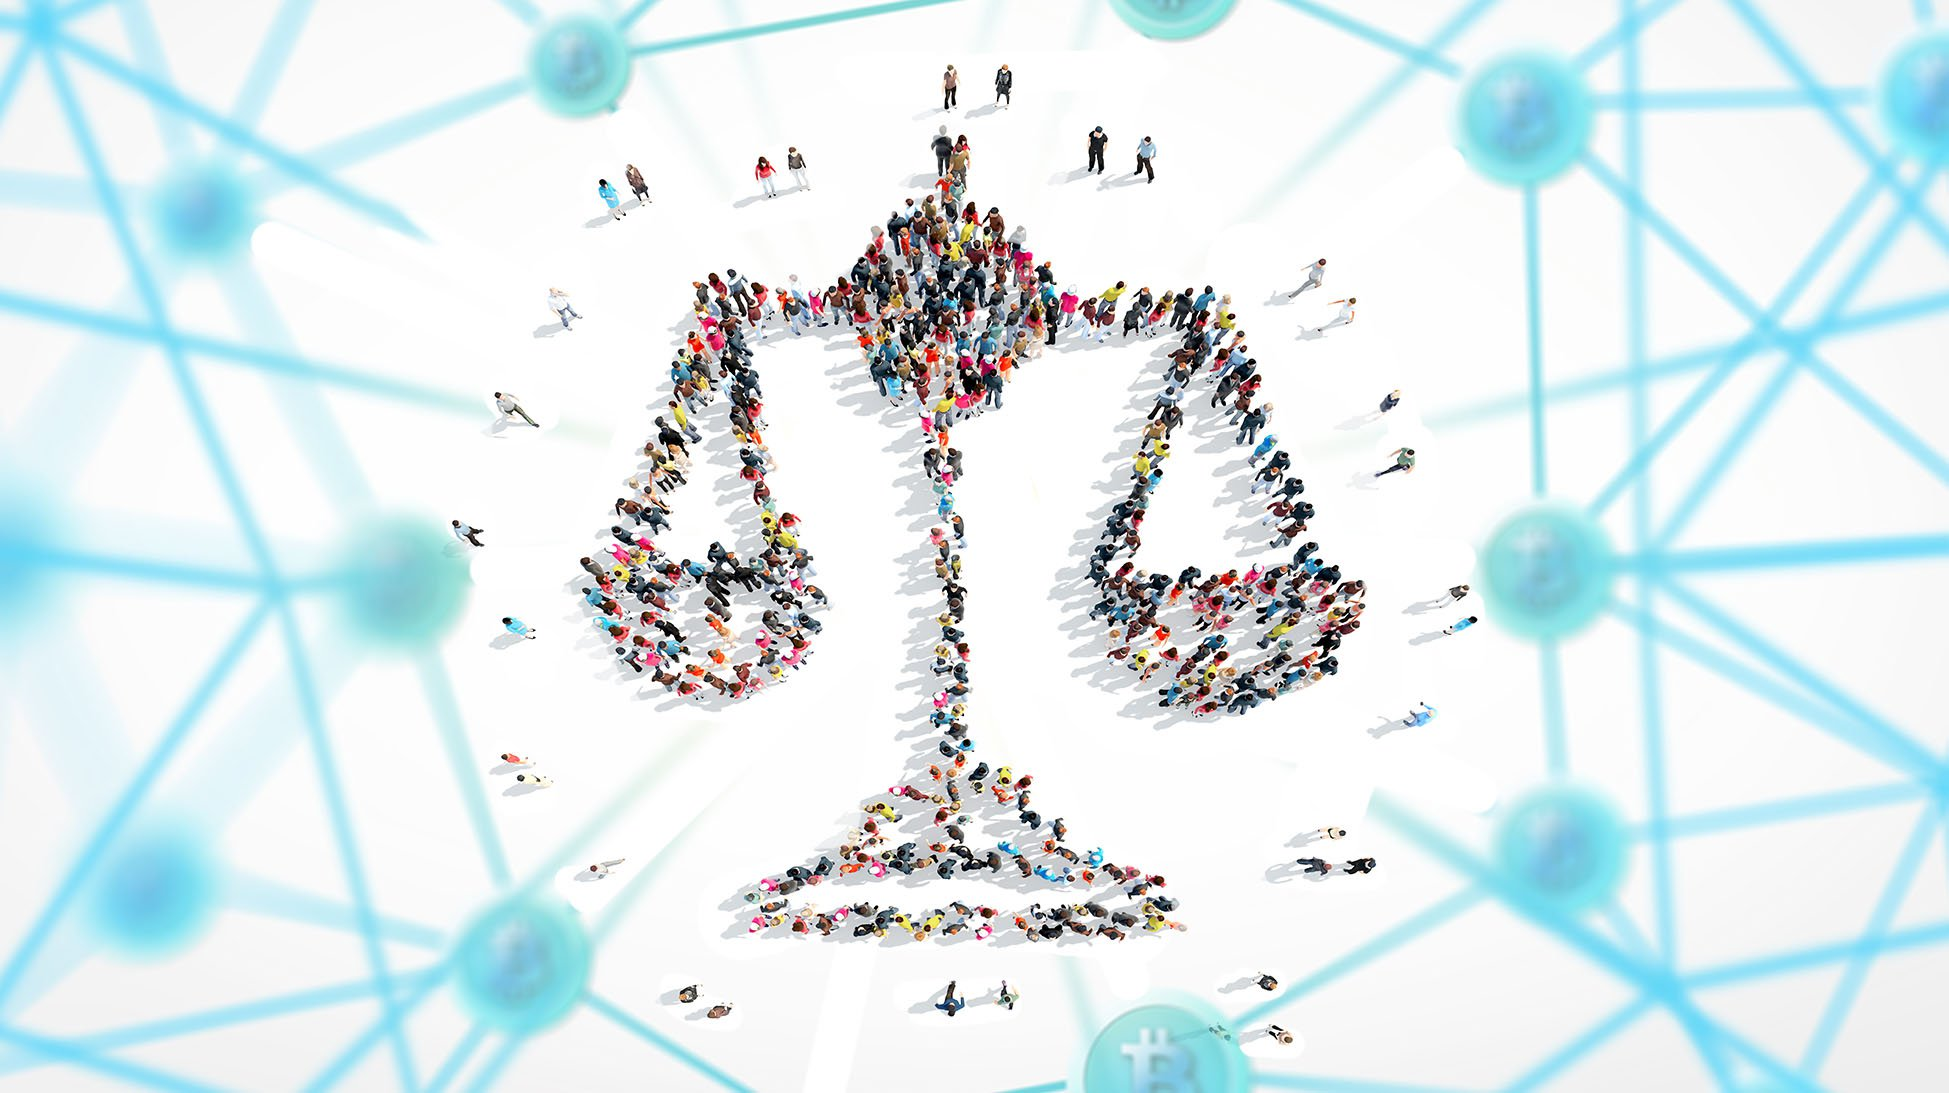 Enterprise Ethereum Alliance Expands Legal Industry Working Group